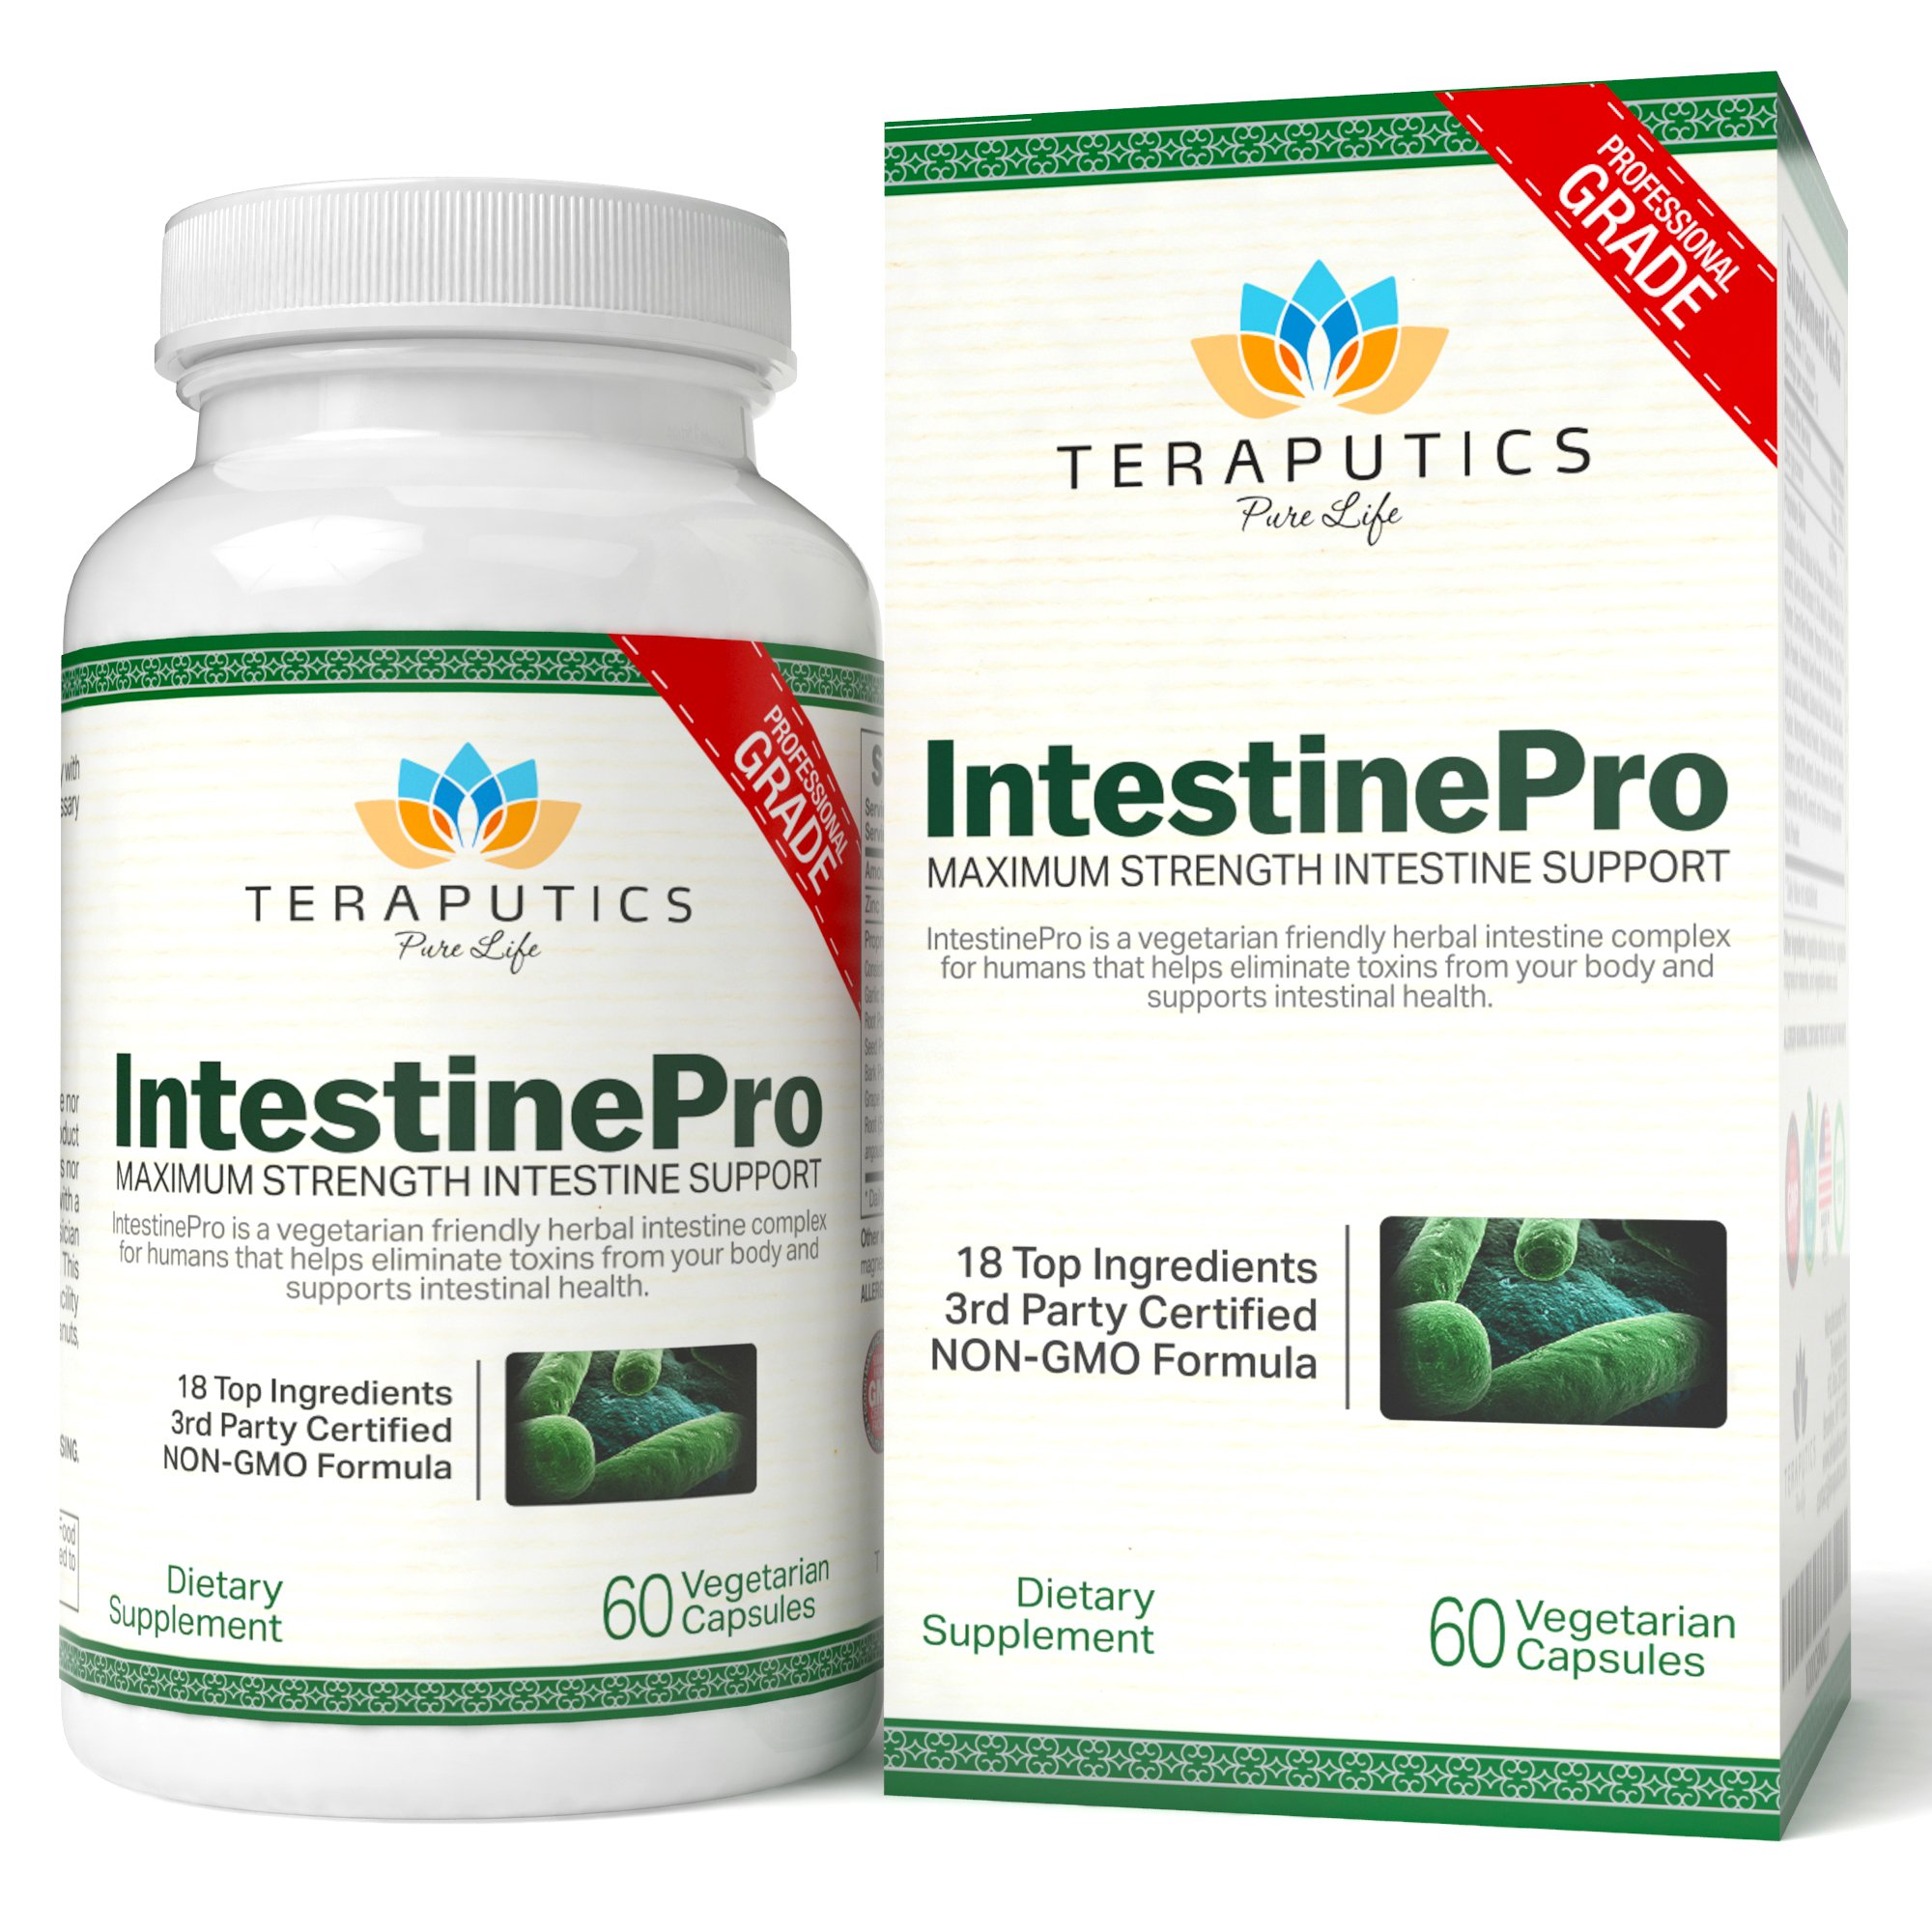 IntestinePro Intestine Support for Humans with NON-GMO Wormwood, Black Walnut, Echinacea + 15 More Premium Ingredients, 1485mg, 30 Servings, 60 Vegetarian Capsules